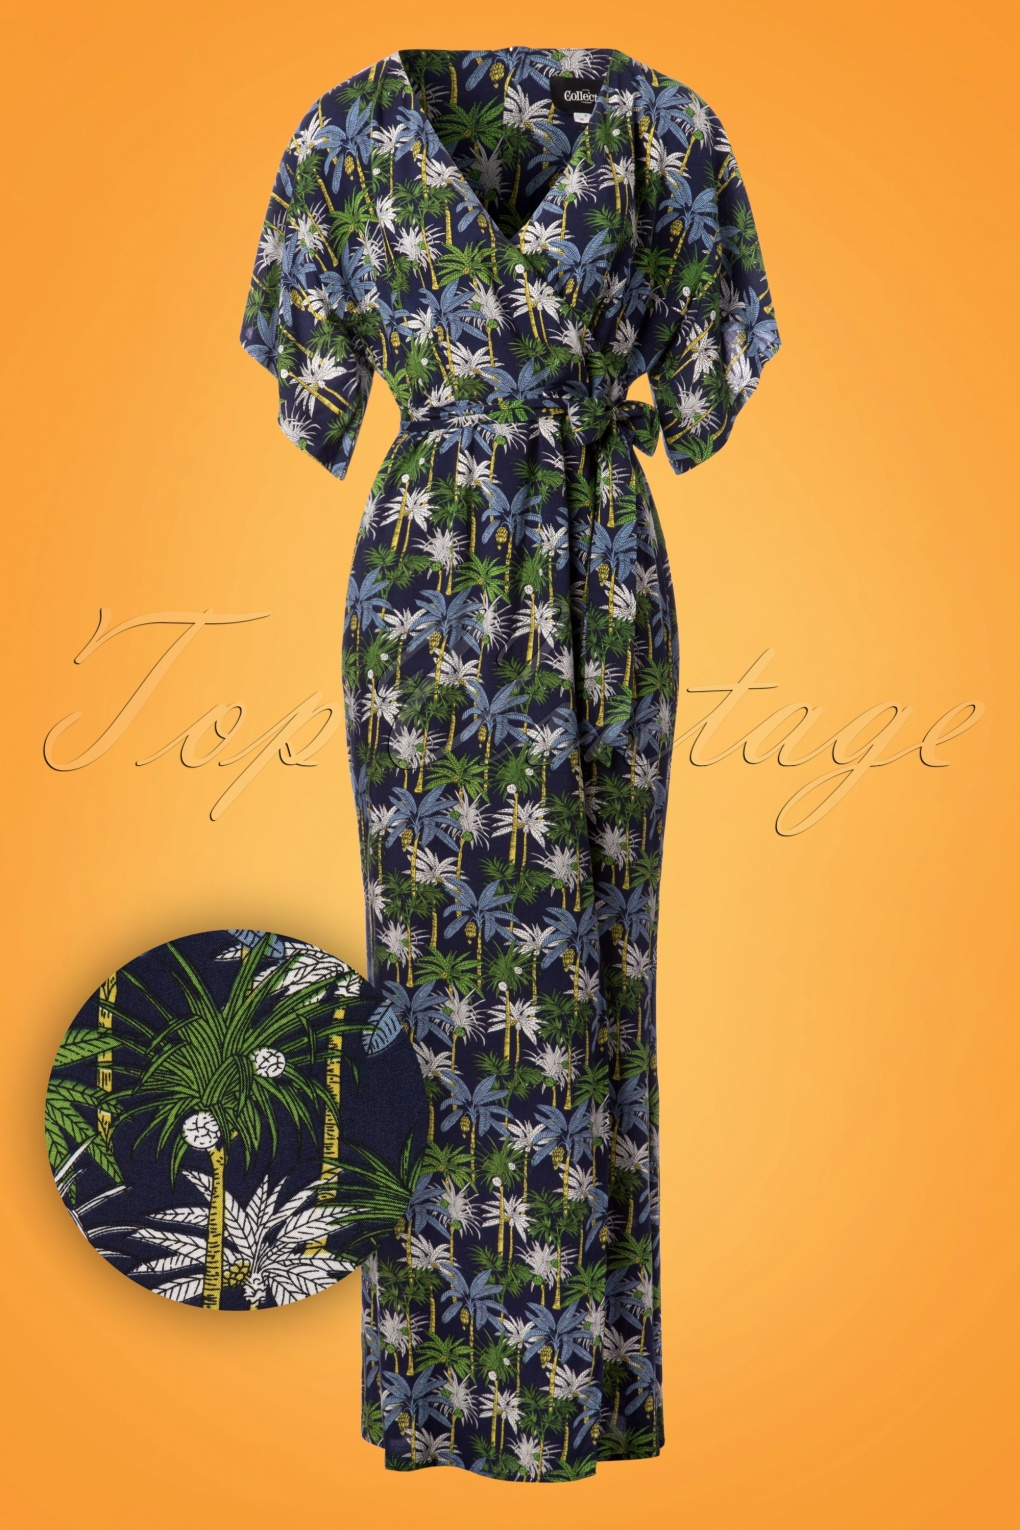 500 Vintage Style Dresses for Sale 70s Kelly Palm Tree Maxi Dress in Navy £57.89 AT vintagedancer.com